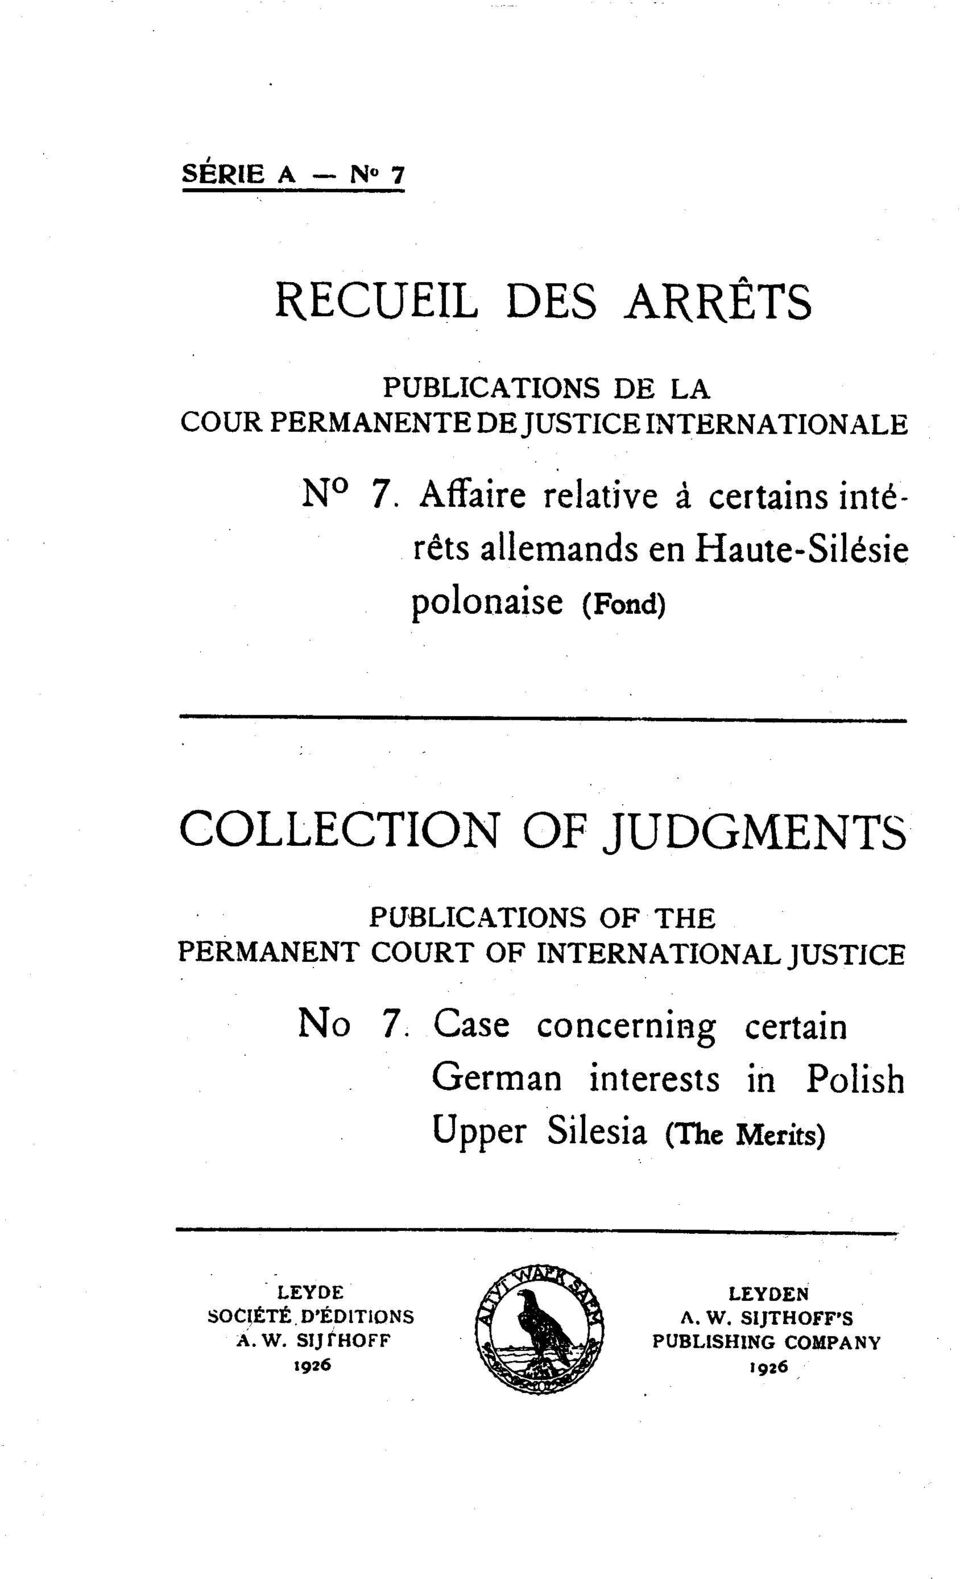 PUBLICATIONS OF THE PERMANENT COURT OF INTERNATIONAL JUSTICE No 7.